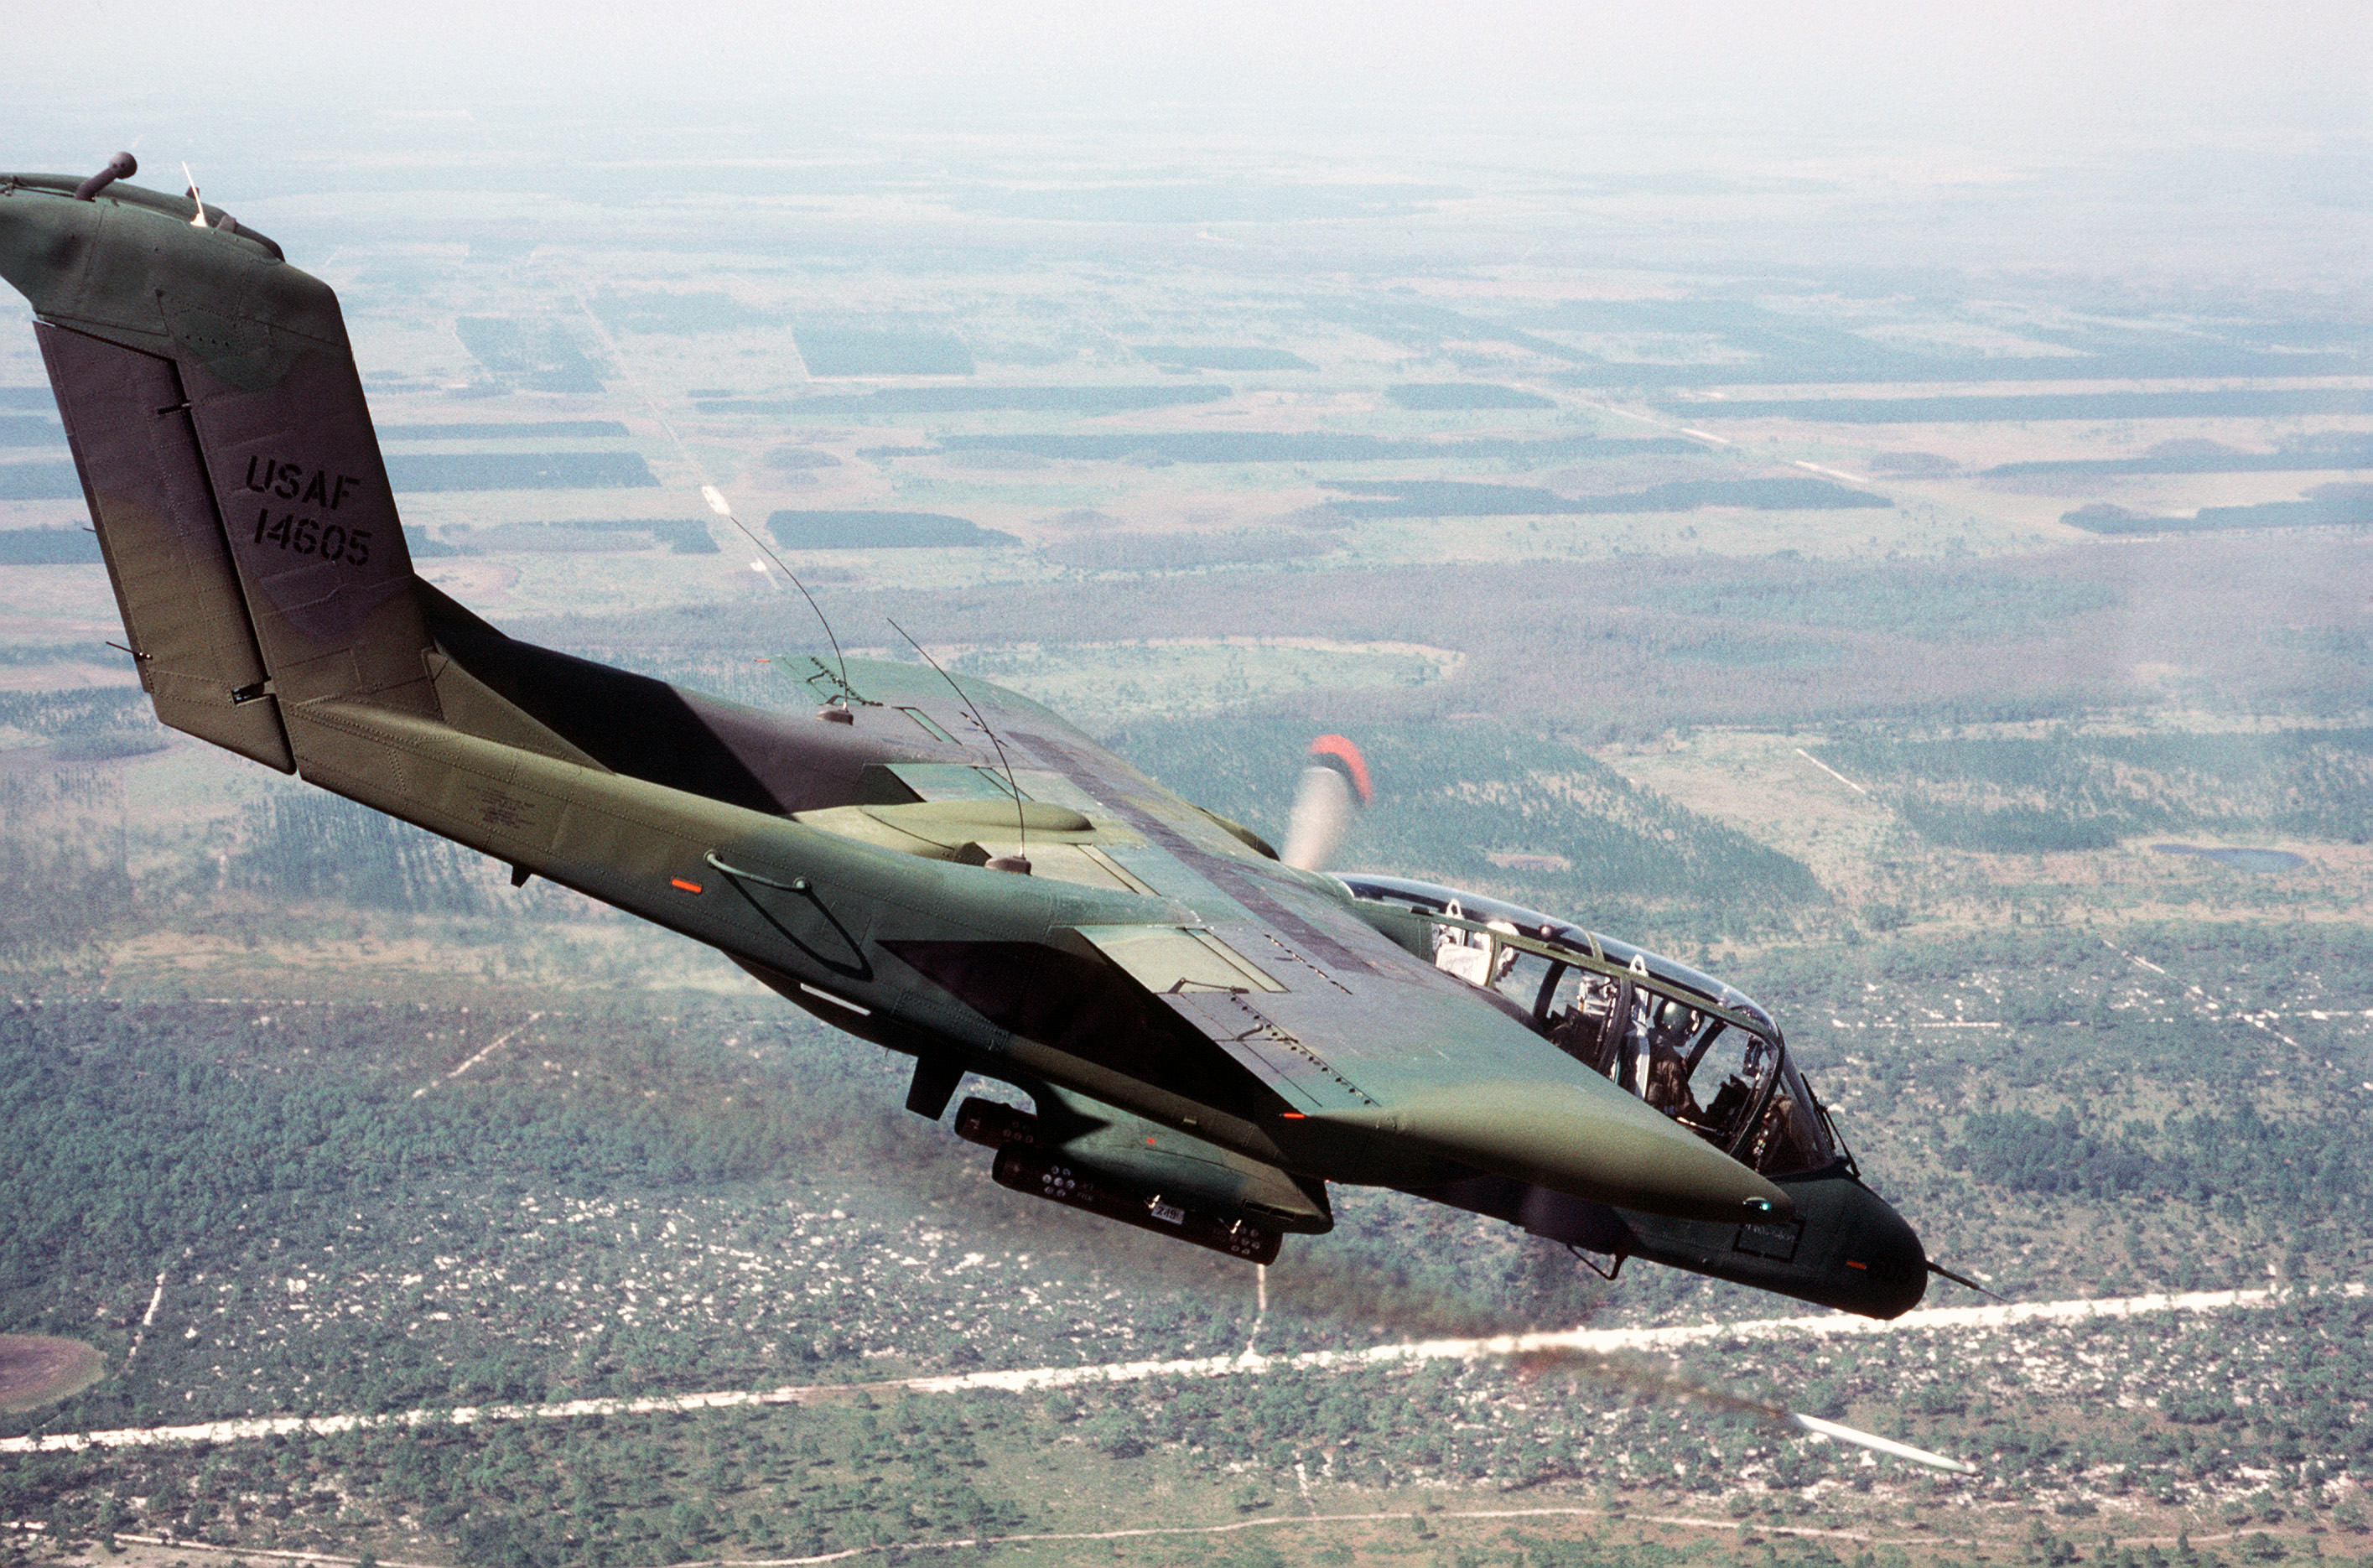 target rc planes with North American Rockwell Ov 10 Bronco on Turkey Russia Turmoil Arnold Ahlert additionally Showthread likewise 100585 True Story About A B17 In WW2 in addition Boeing B17 likewise Pusher Military Aircraft Failed Concept.